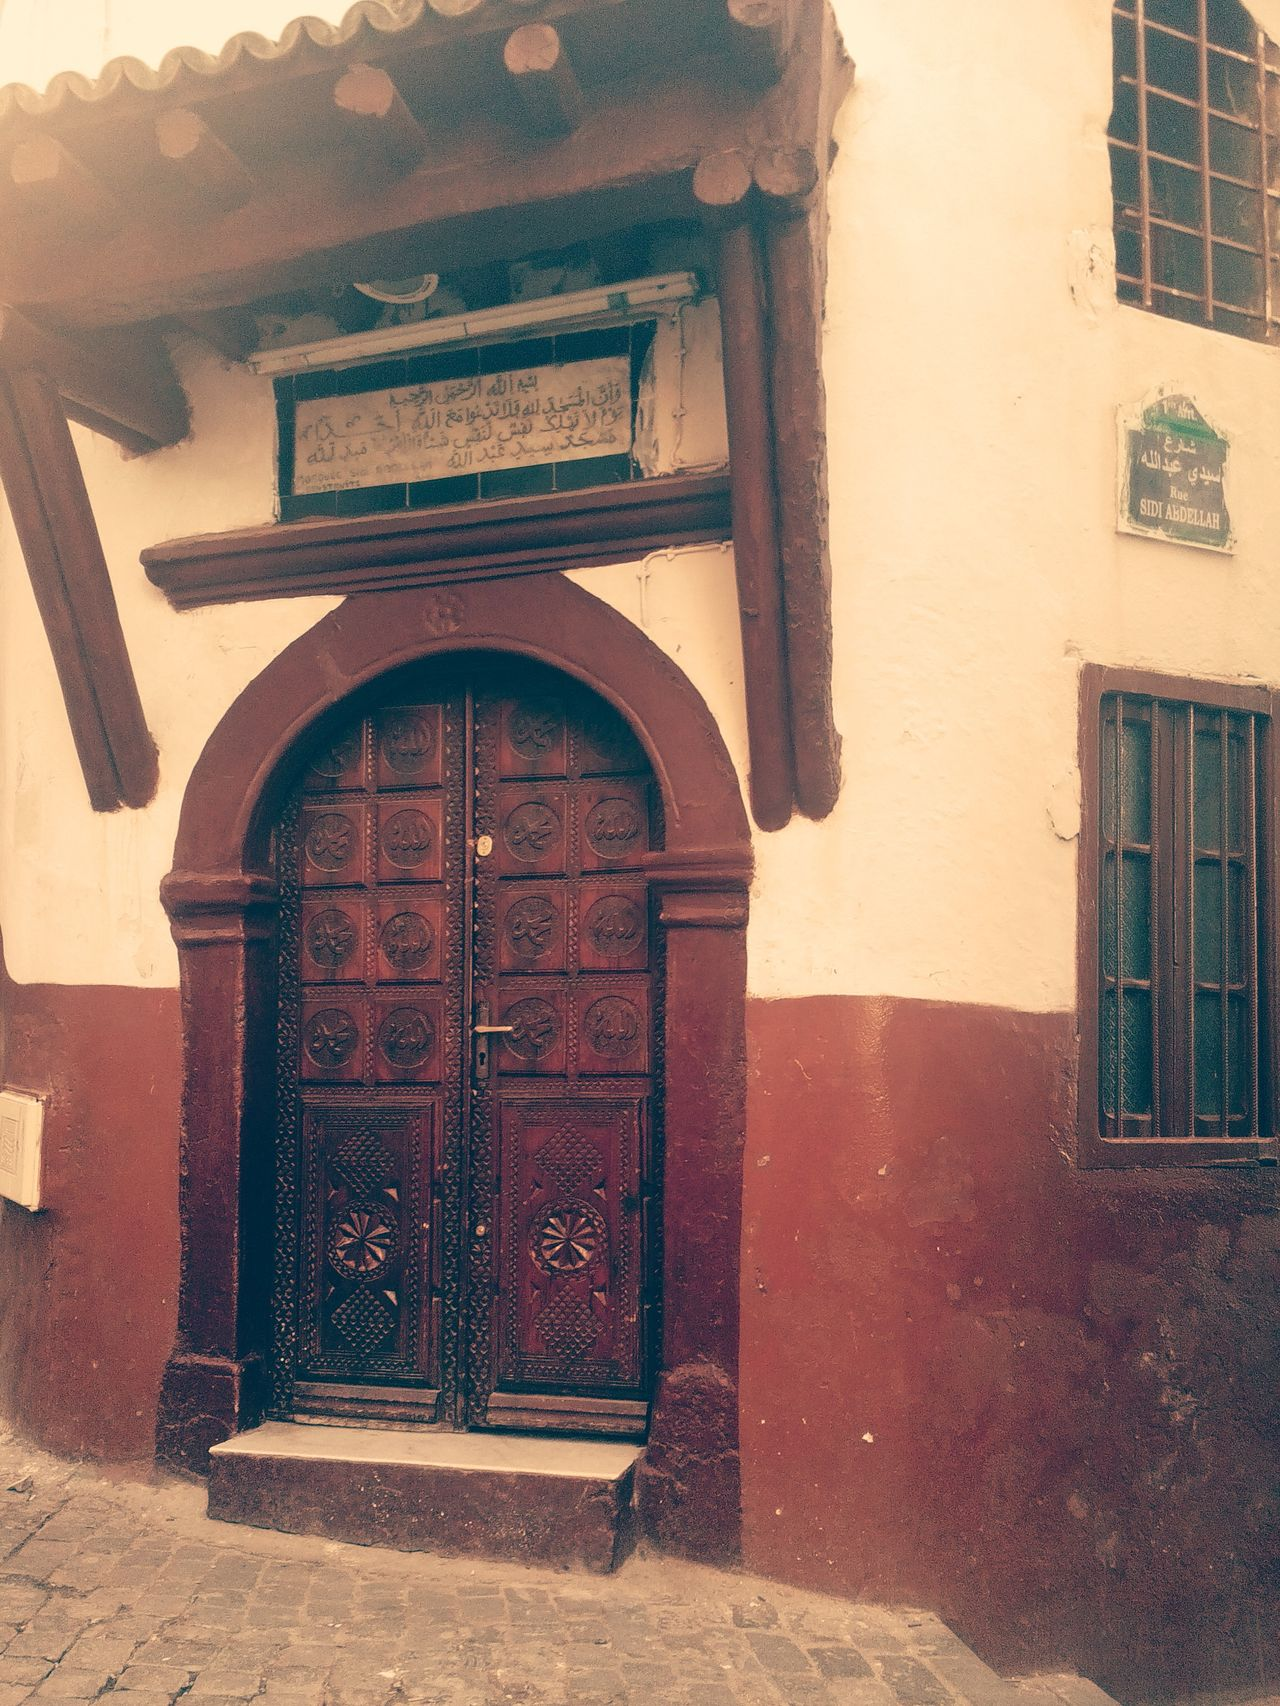 Getting Inspired Masjid Religion Architecture Olddoor Photography Historical Building Oldbuilding Doors History